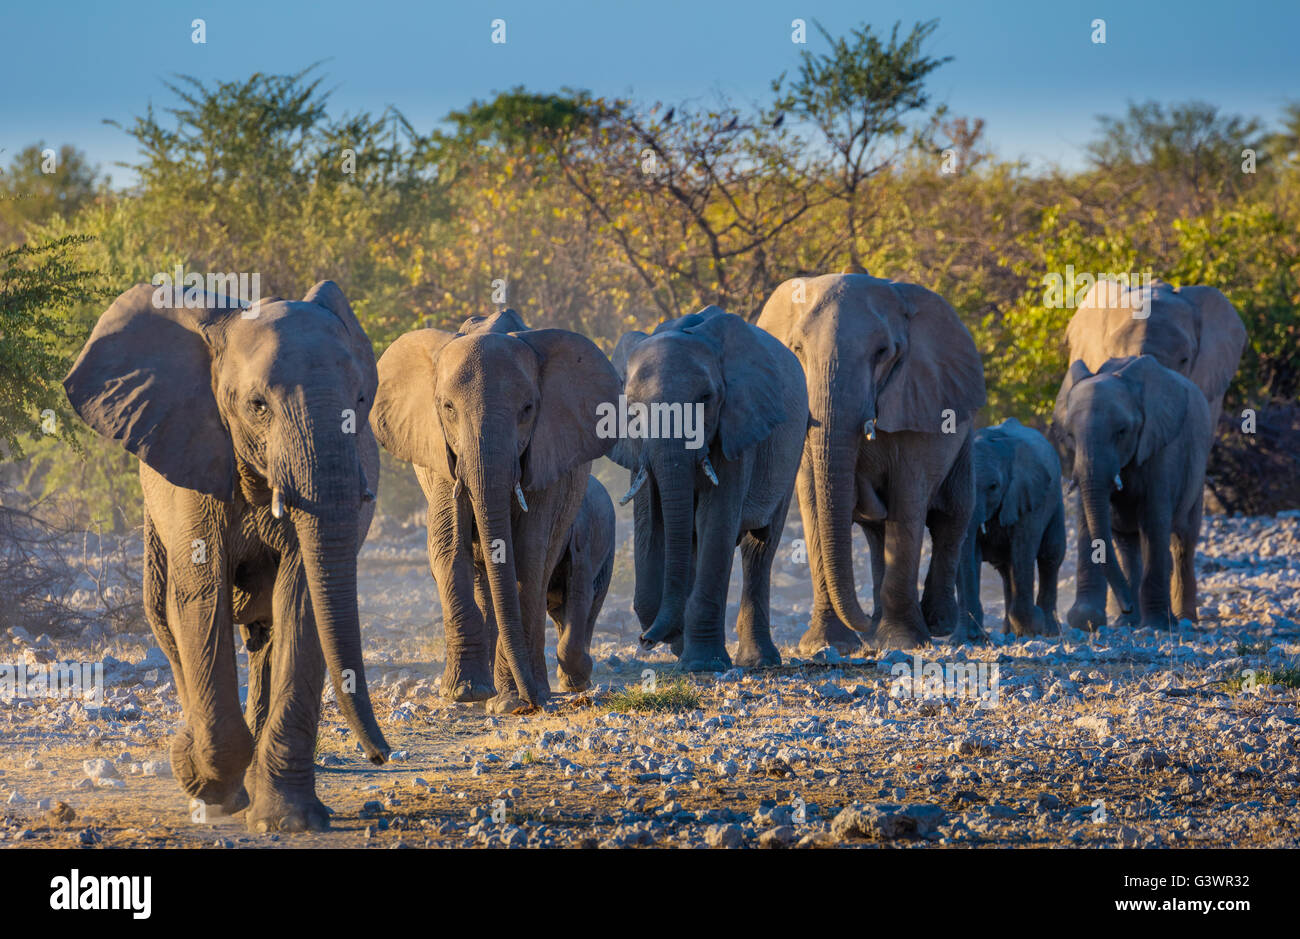 African elephants in Etosha National Park, Namibia. Stock Photo